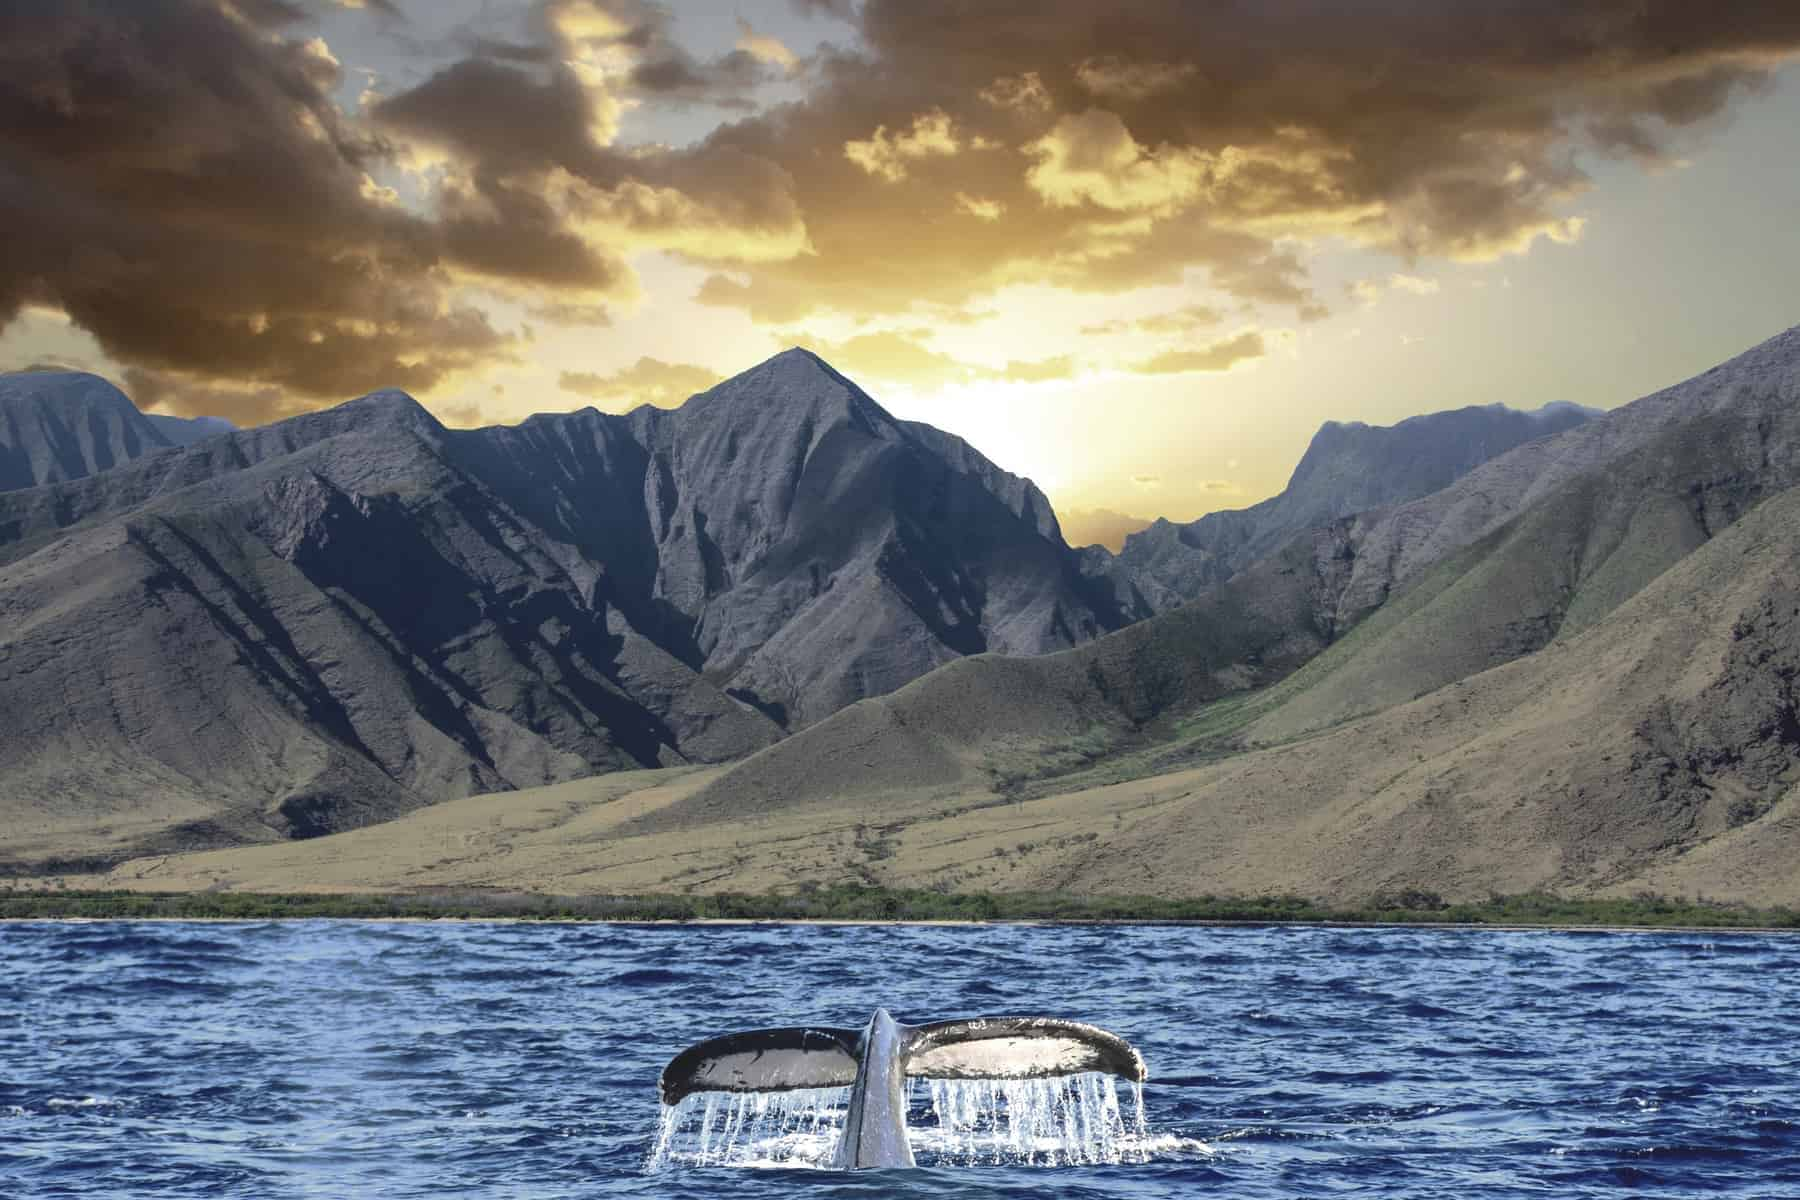 Humpback Whale Tail out of the water with Mountains, Clouds and Sunset in Maui Hawaii